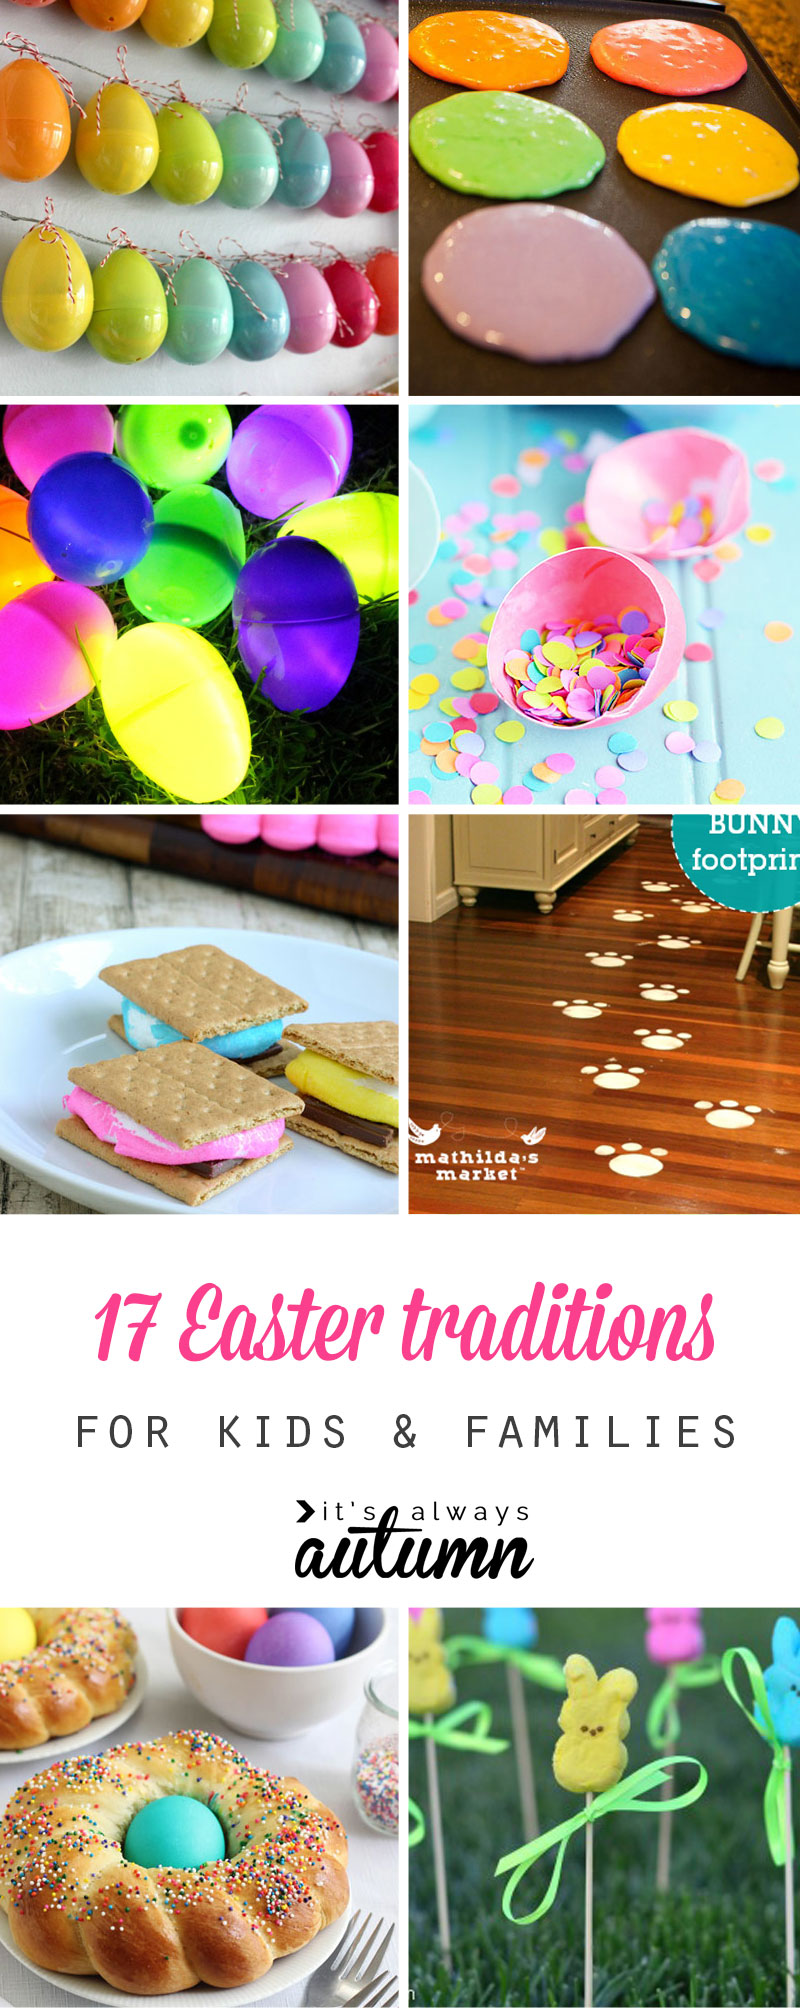 17 fun Easter traditions to start with your family this year! Some are Christ-based for the true meaning of Easter and others are just for fun